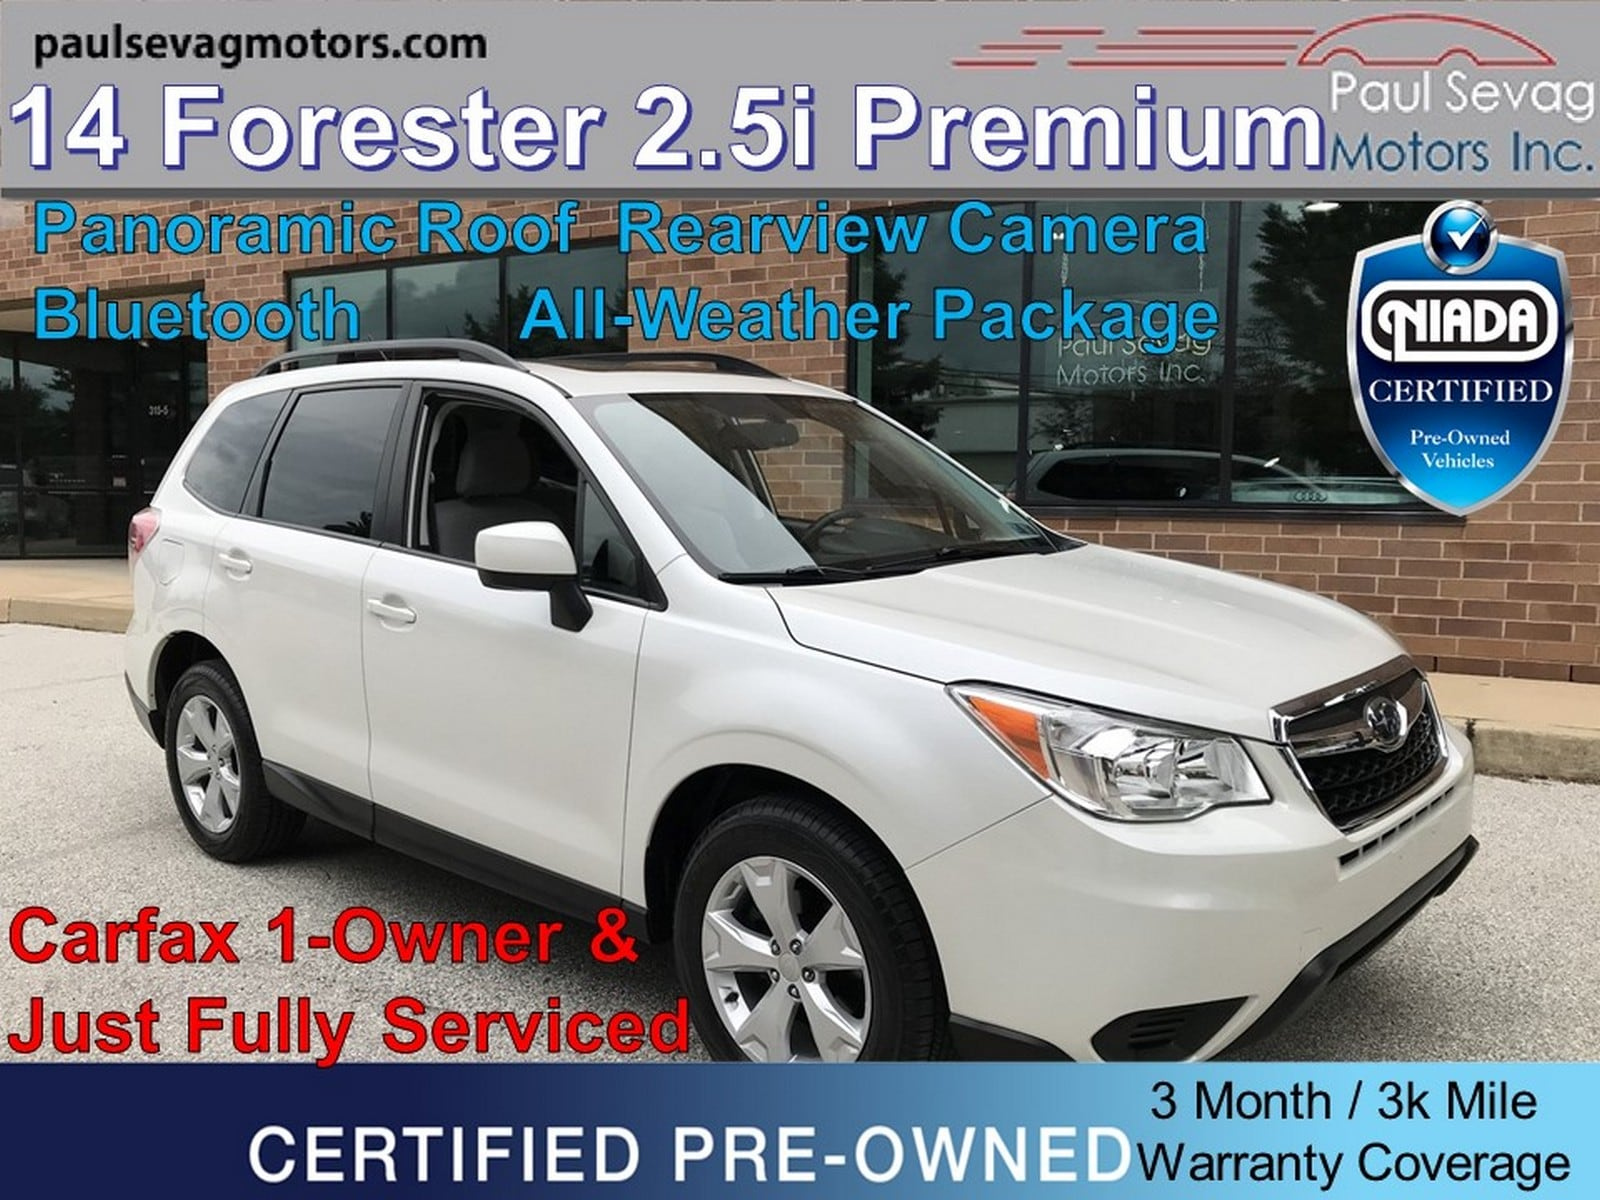 2014 Subaru Forester 2.5i Premium AWD Pano Roof/Heated Seats/1-Owner/Warranty